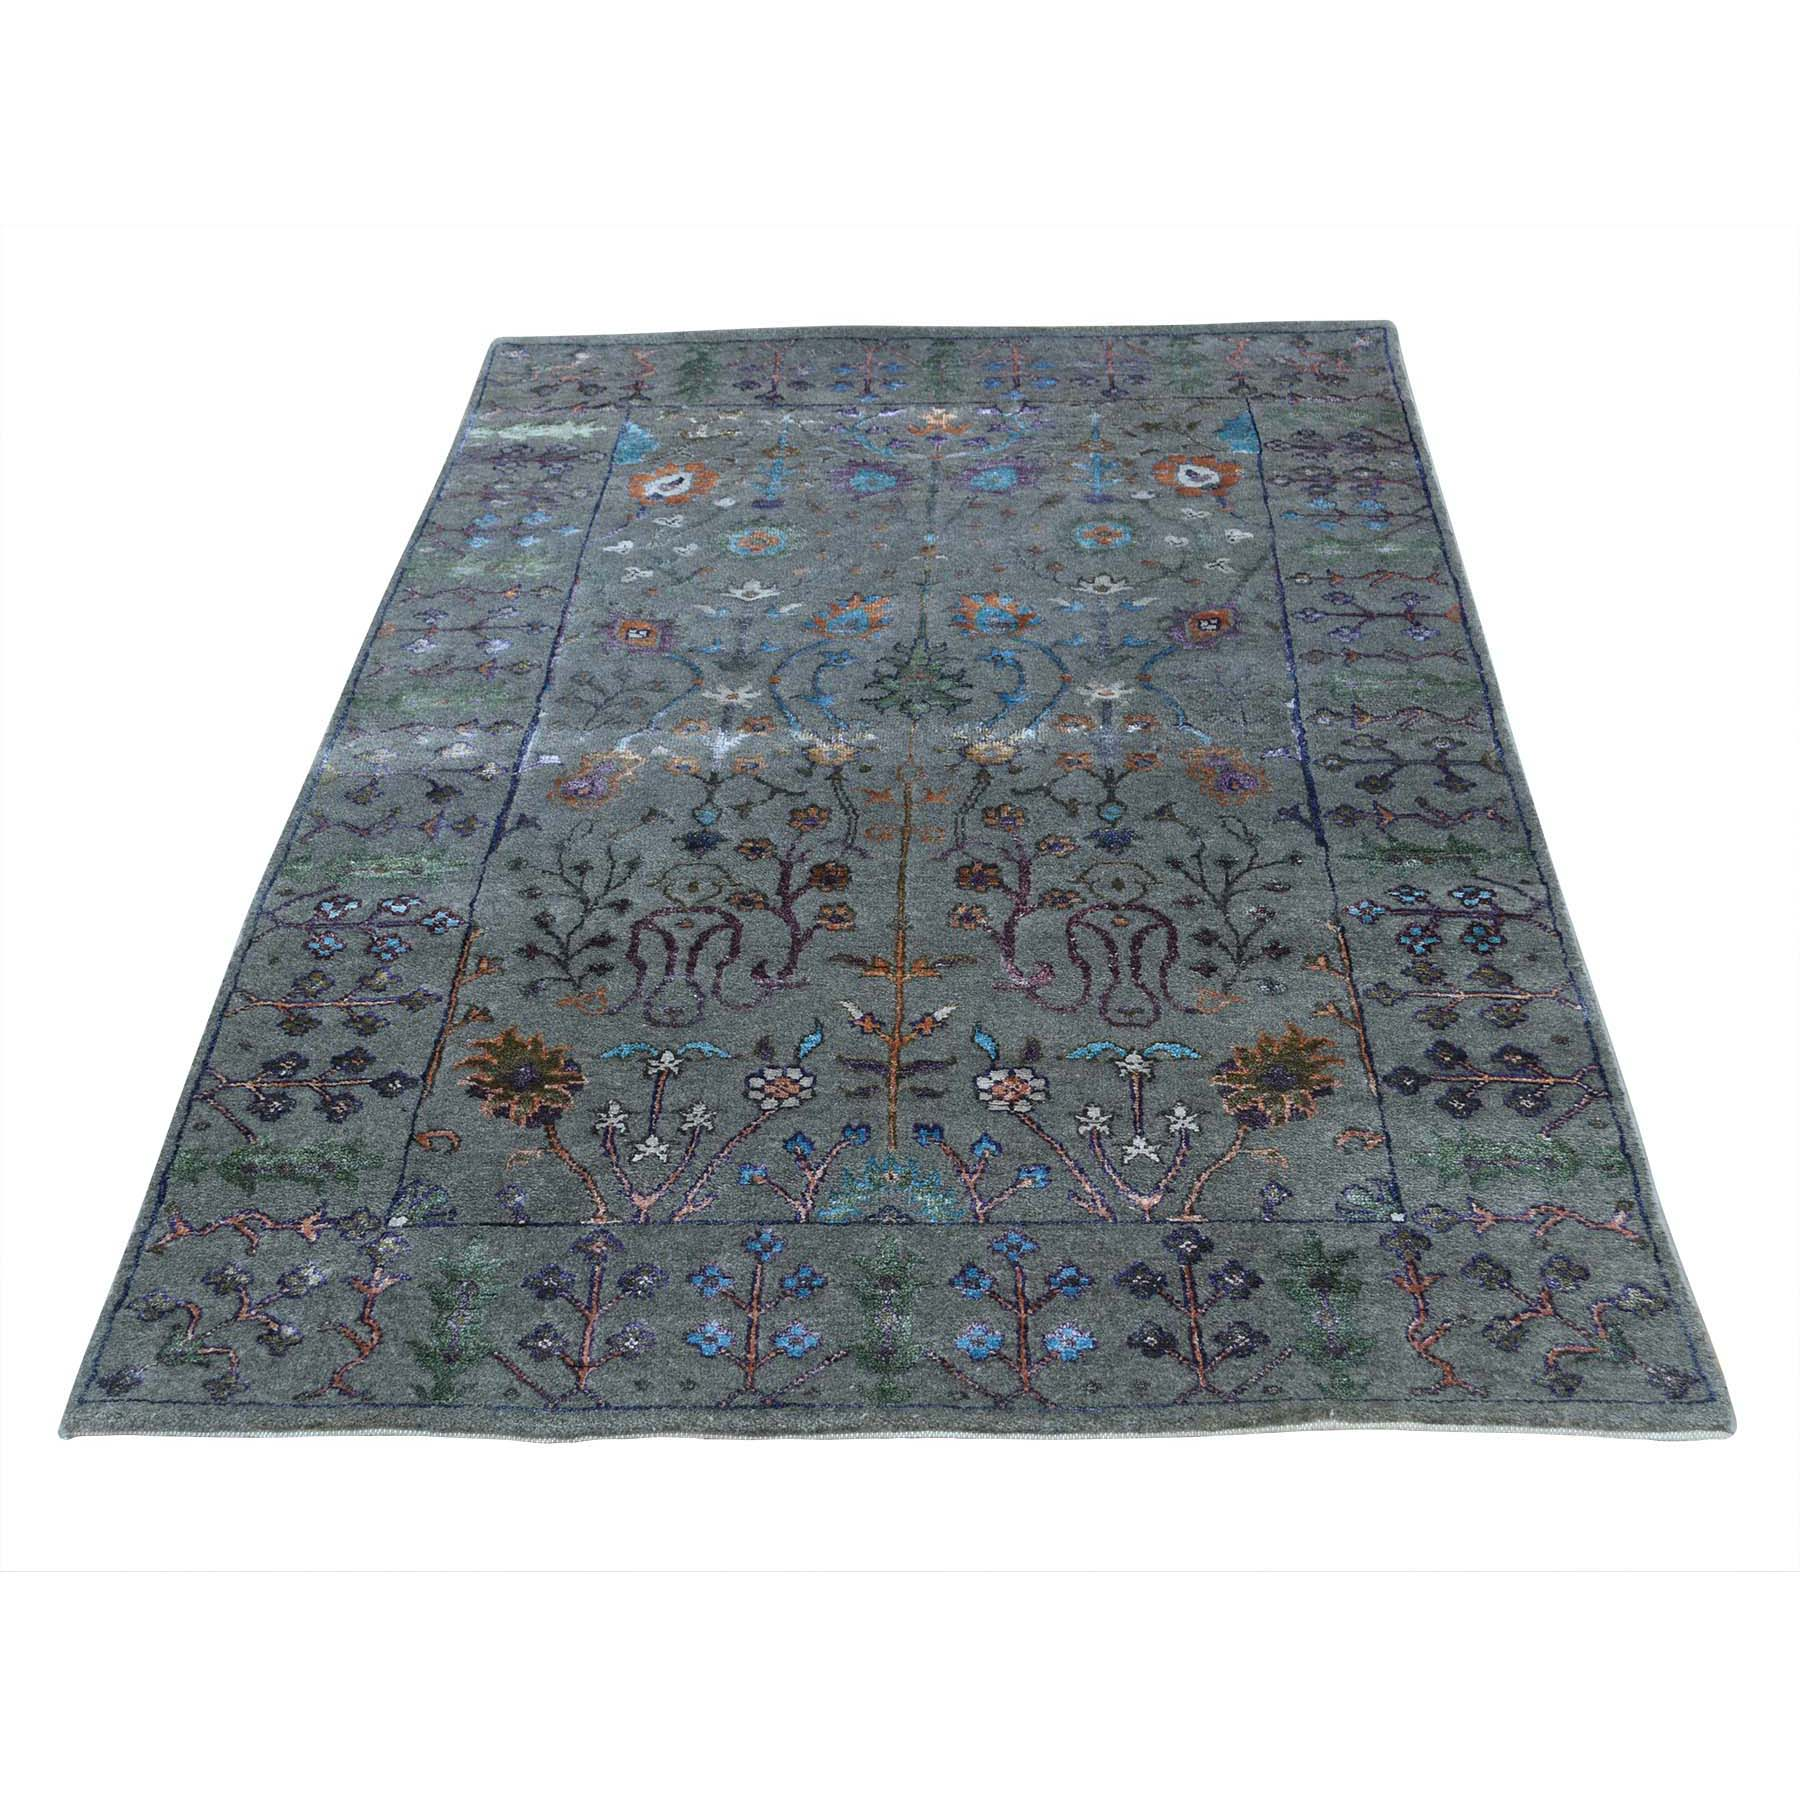 arts and crafts rugs LUV327429